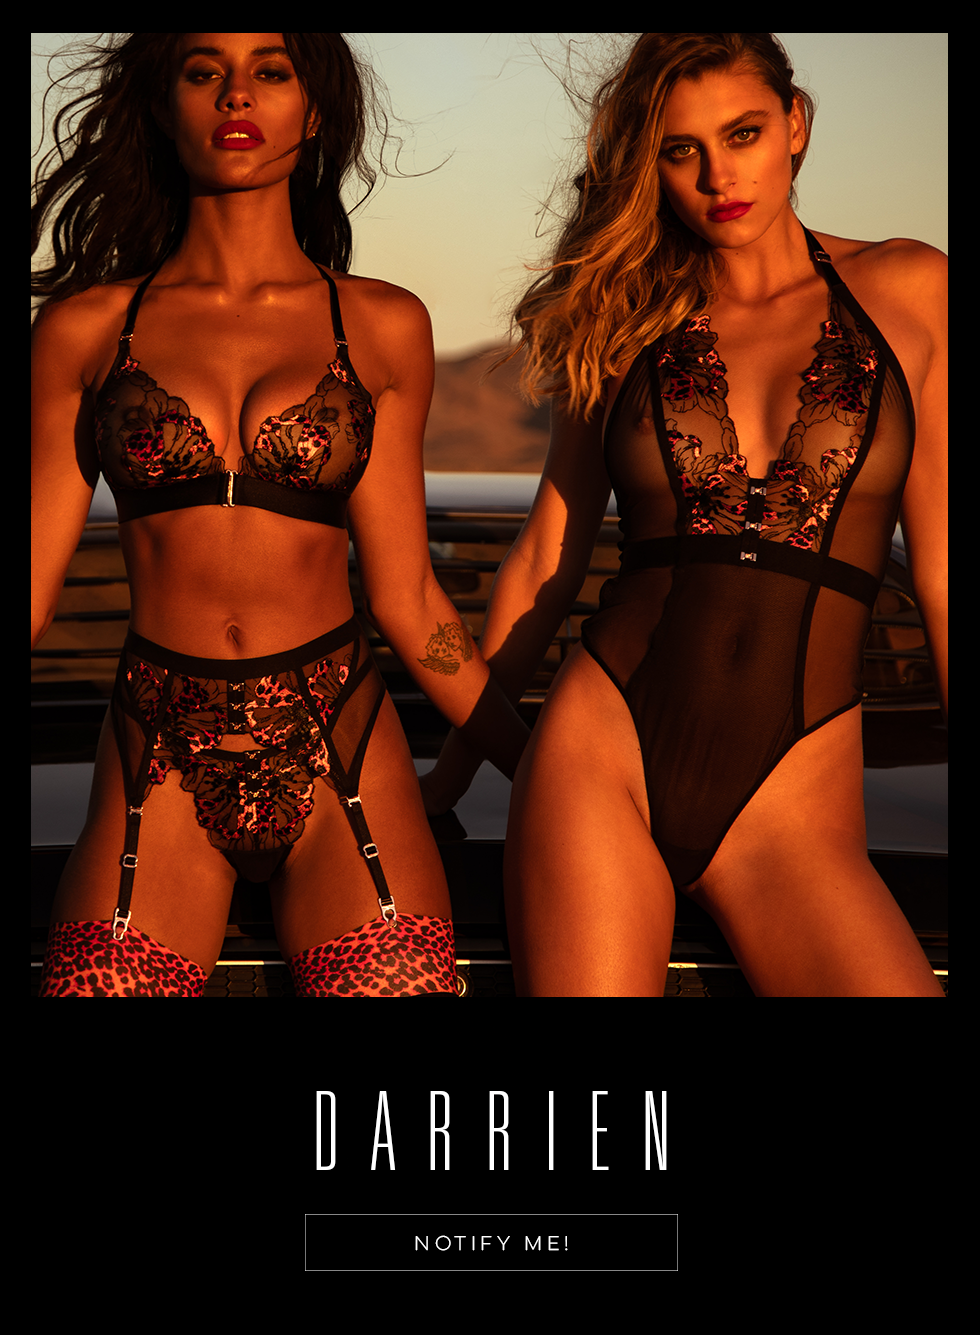 Shop Luxury Lingerie Online. Honey Birdette Offers a Range of Carefully Detailed Bras, Garter belts & Panties, To High-end Bedroom Toys. Afterpay & Free Shipping over $50.